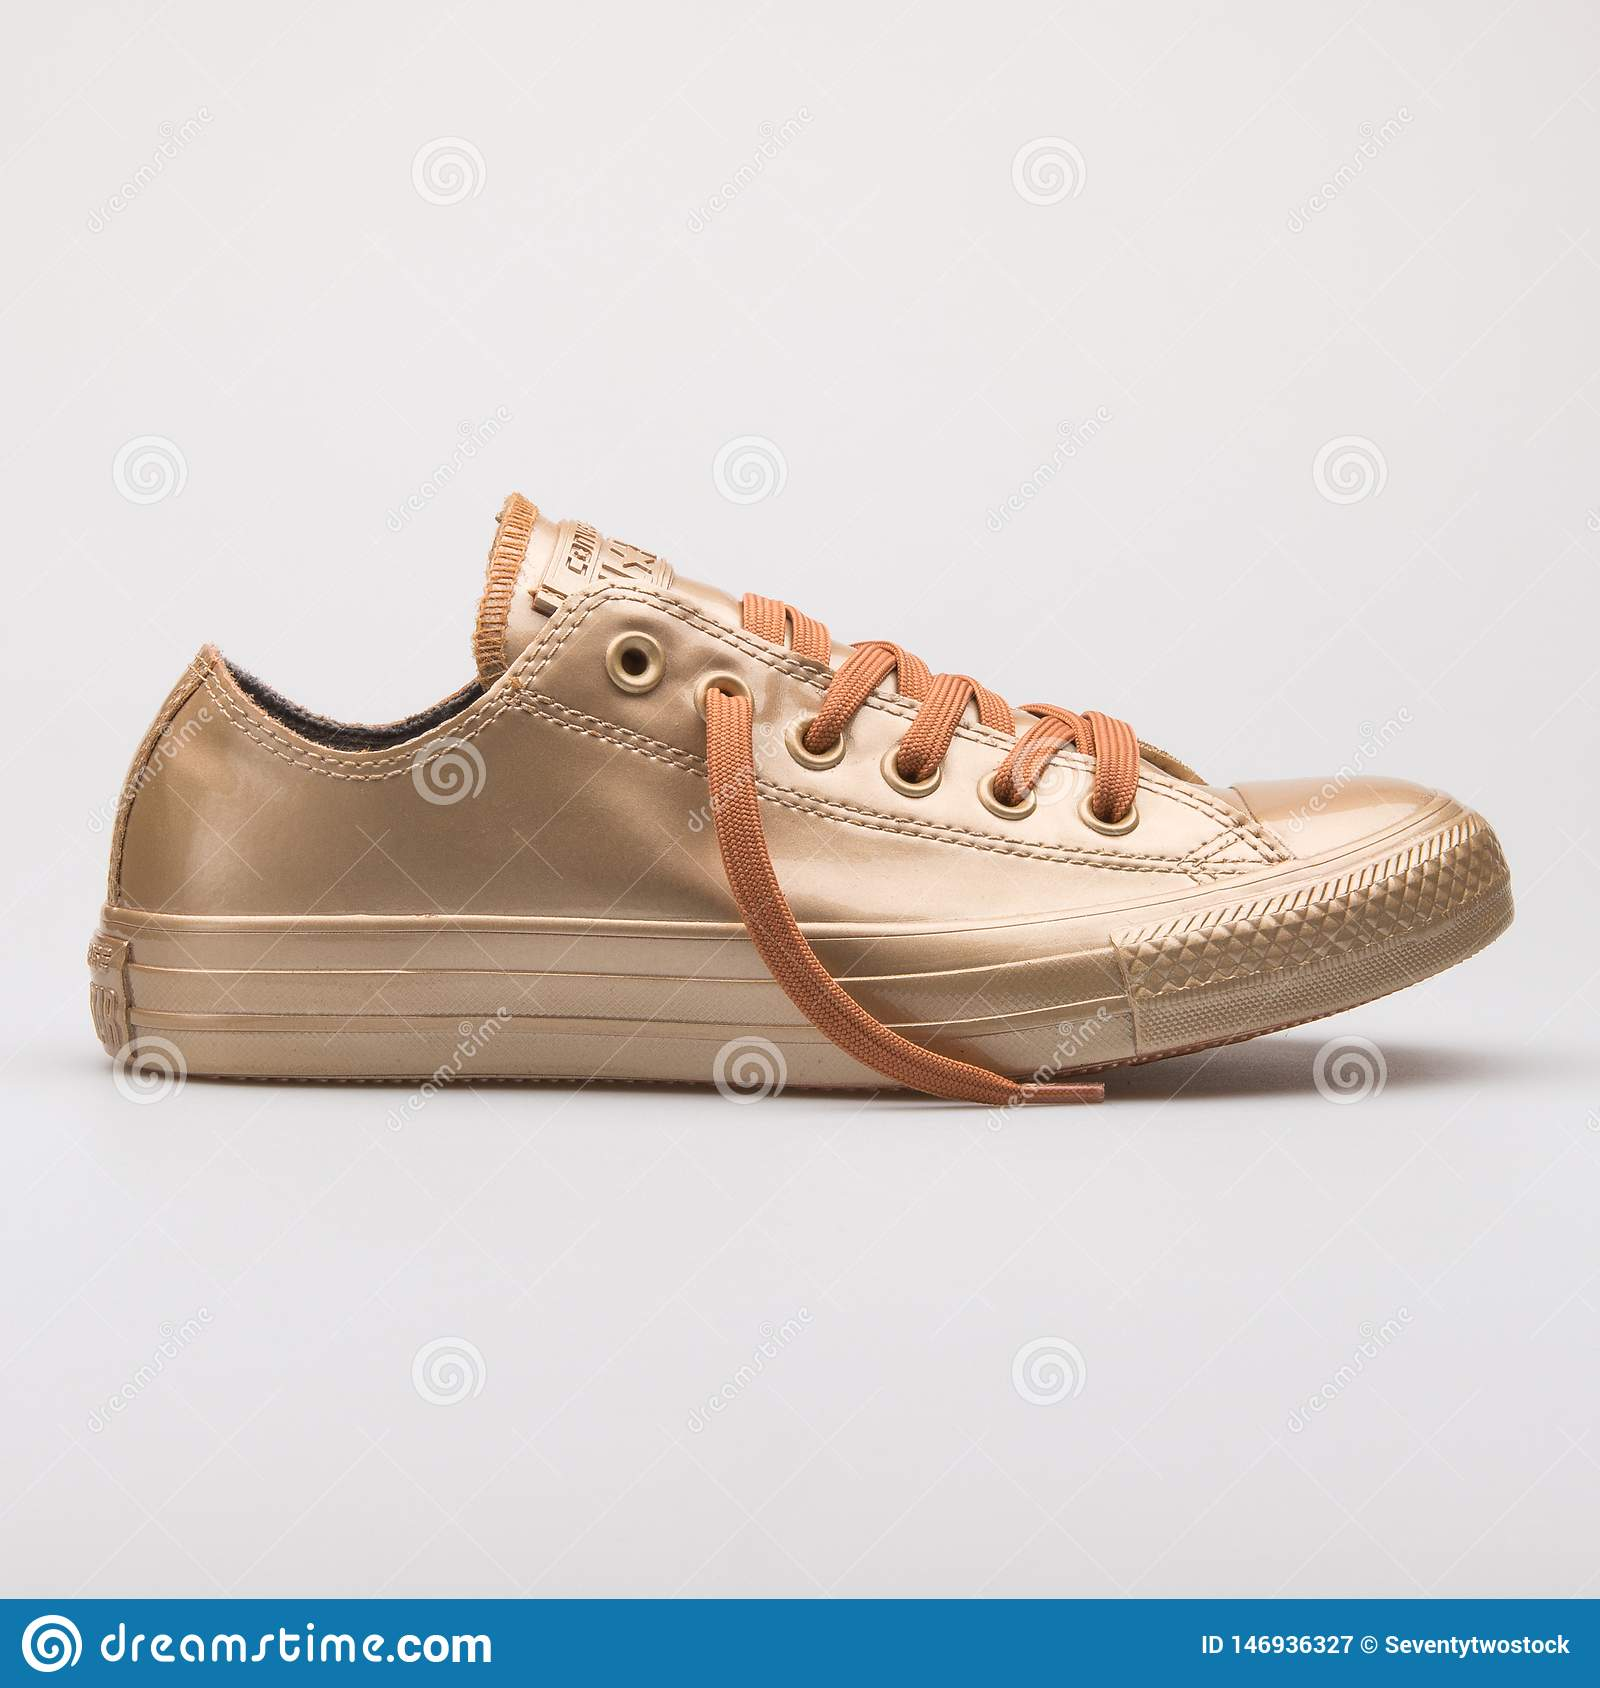 Converse Chuck Taylor All Star Metallic Rubber OX Blush Gold